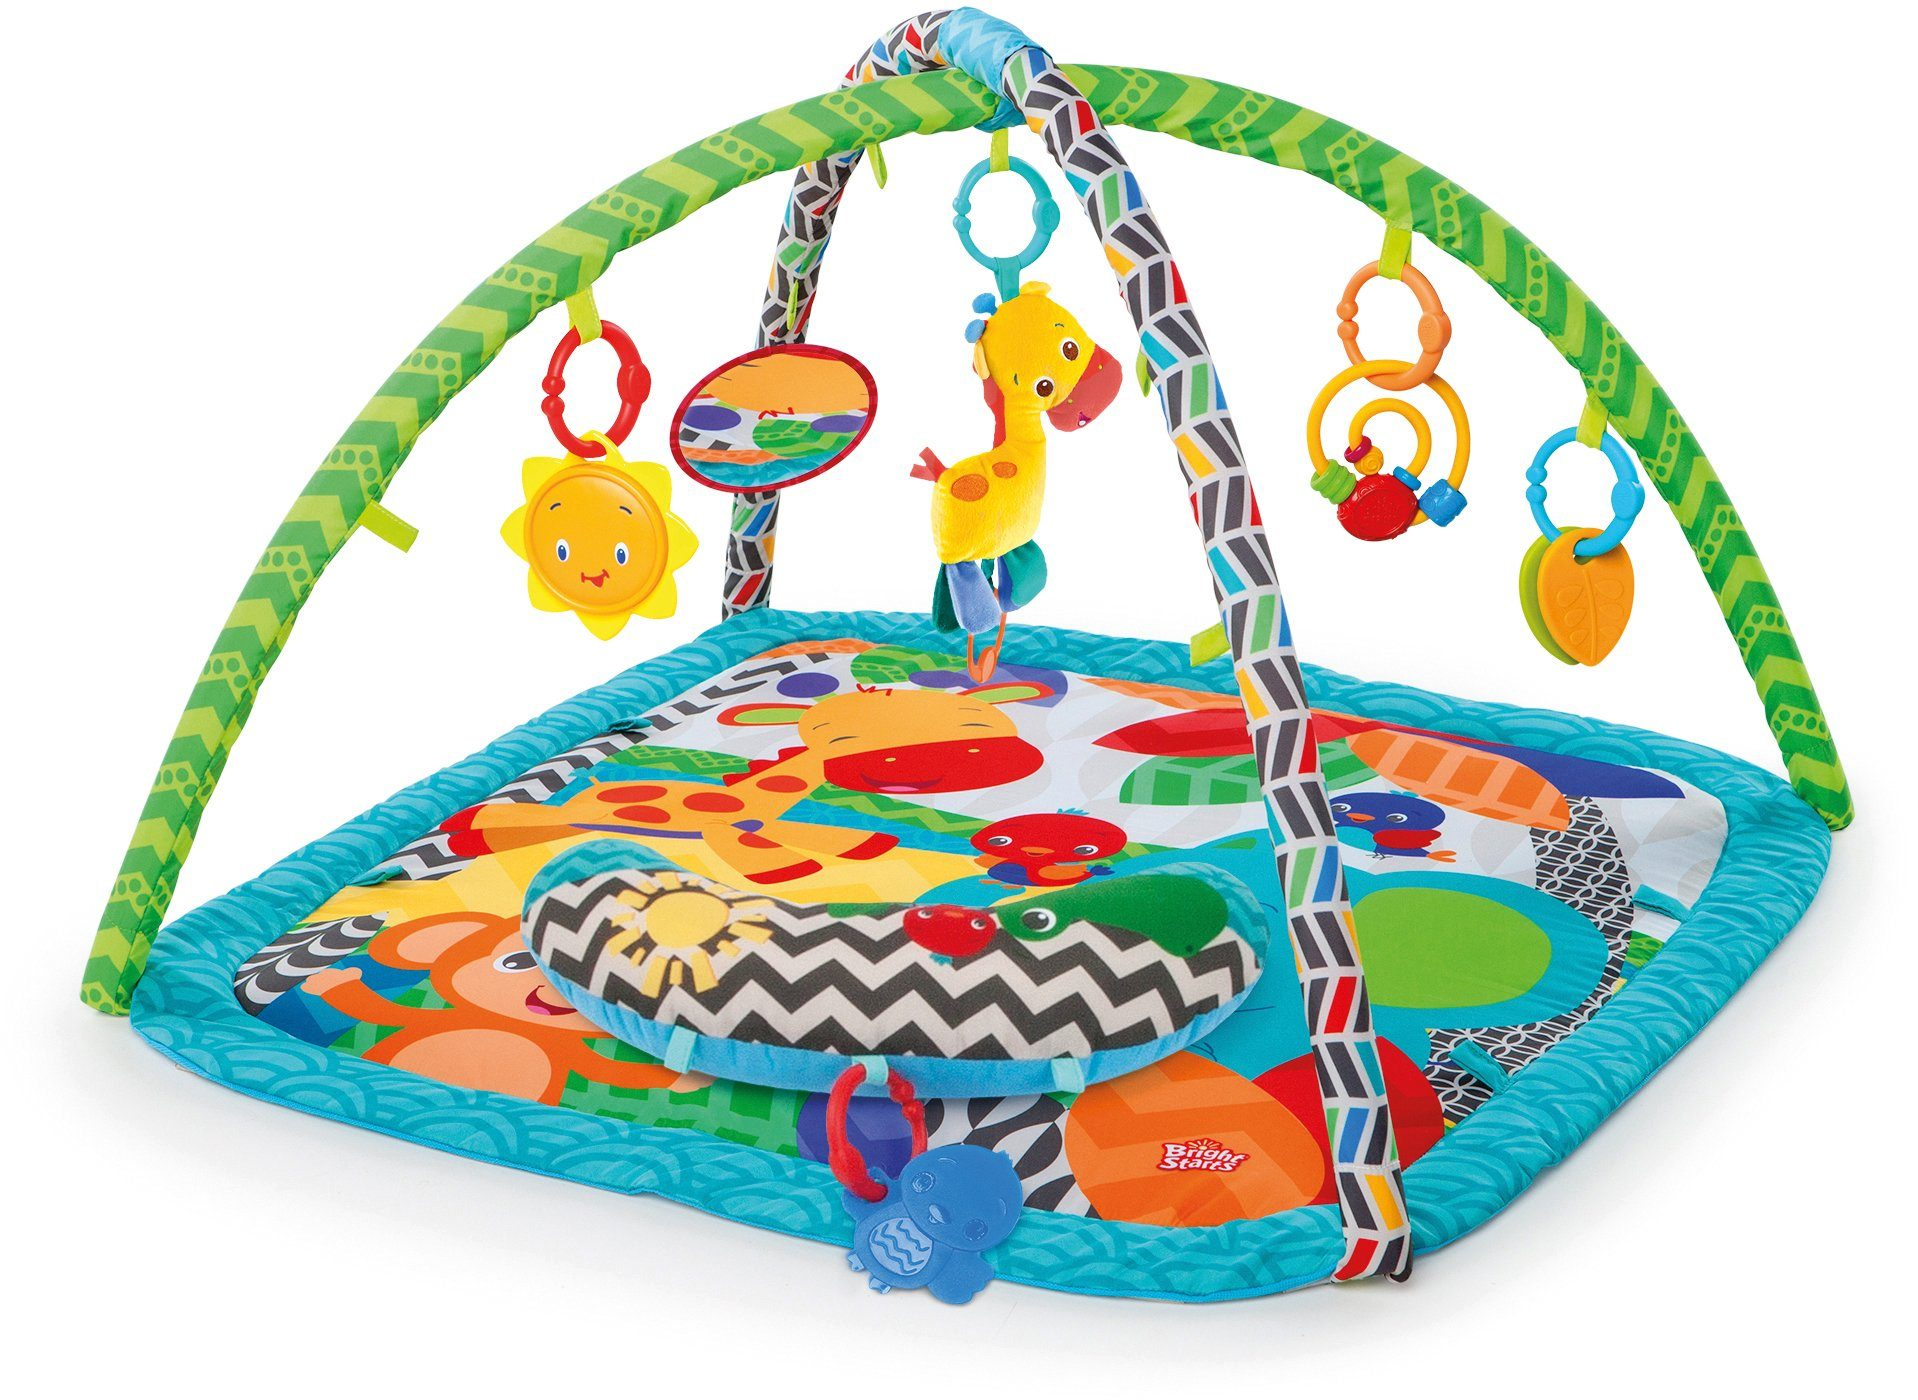 Kids II Krabbeldecke mit Spielbogen, »Zippy Zoo Activity Gym«